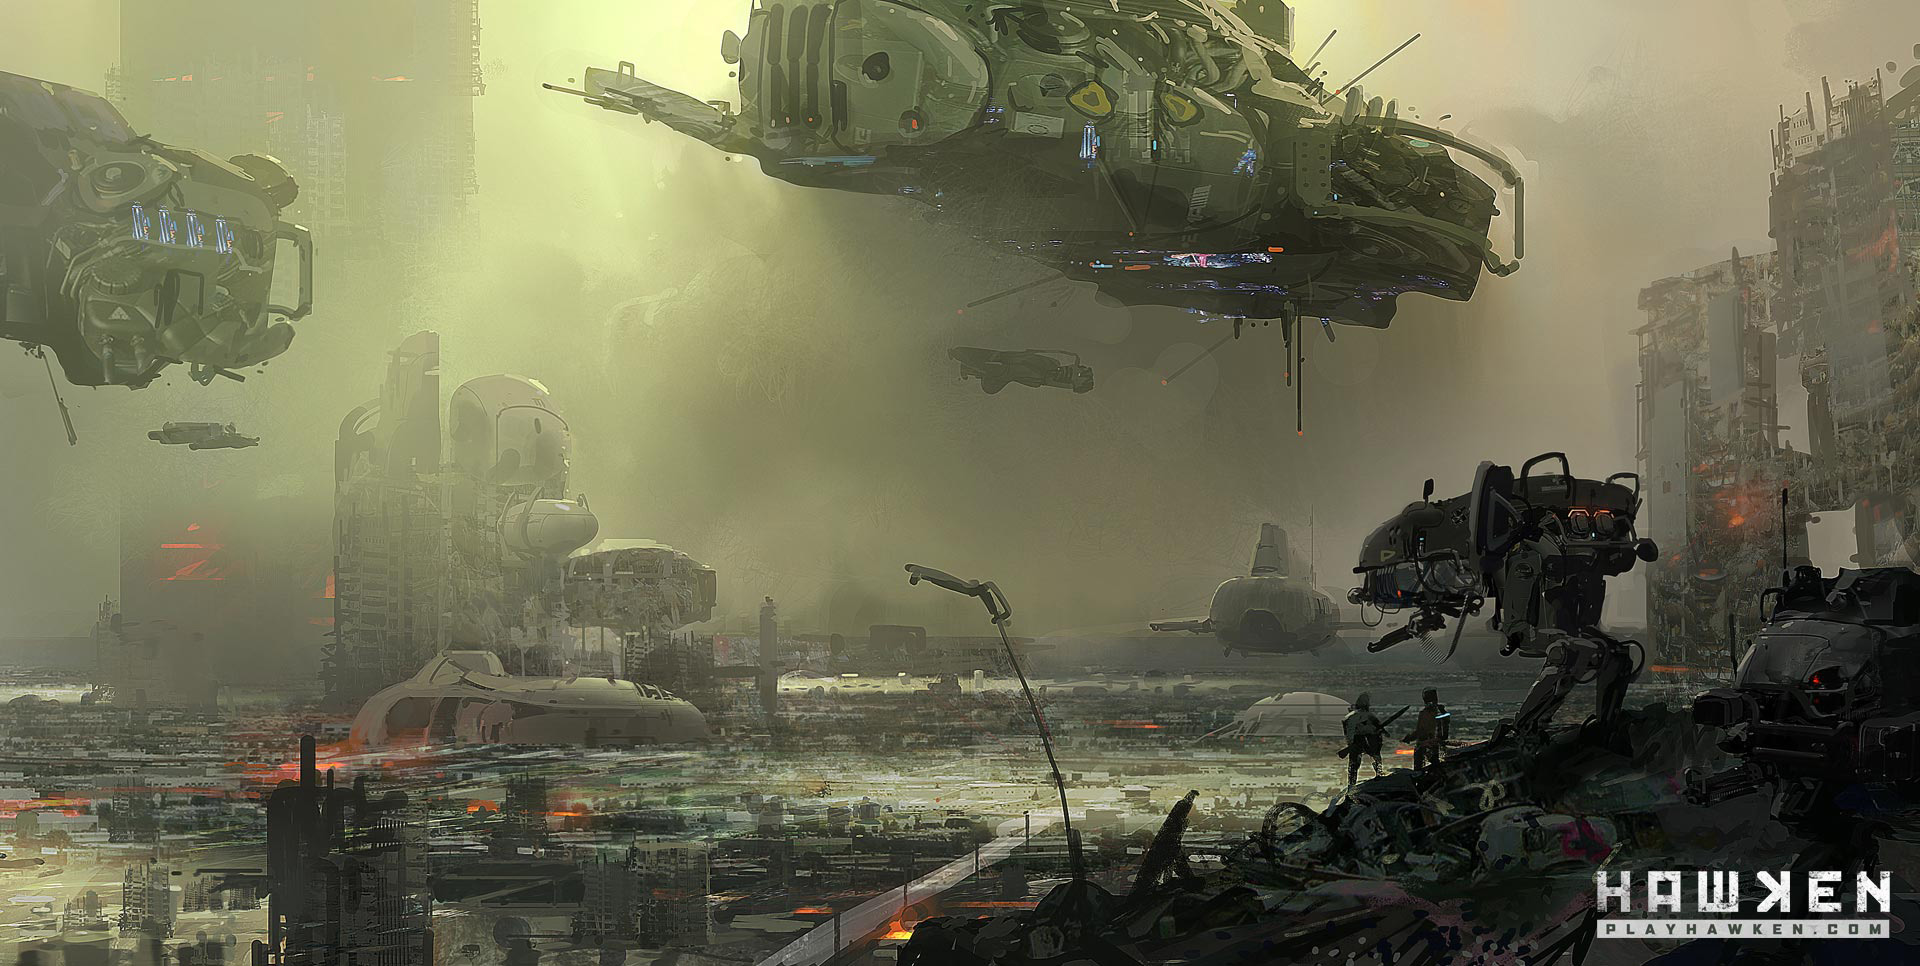 Hawken Concept Art | Concept Art World